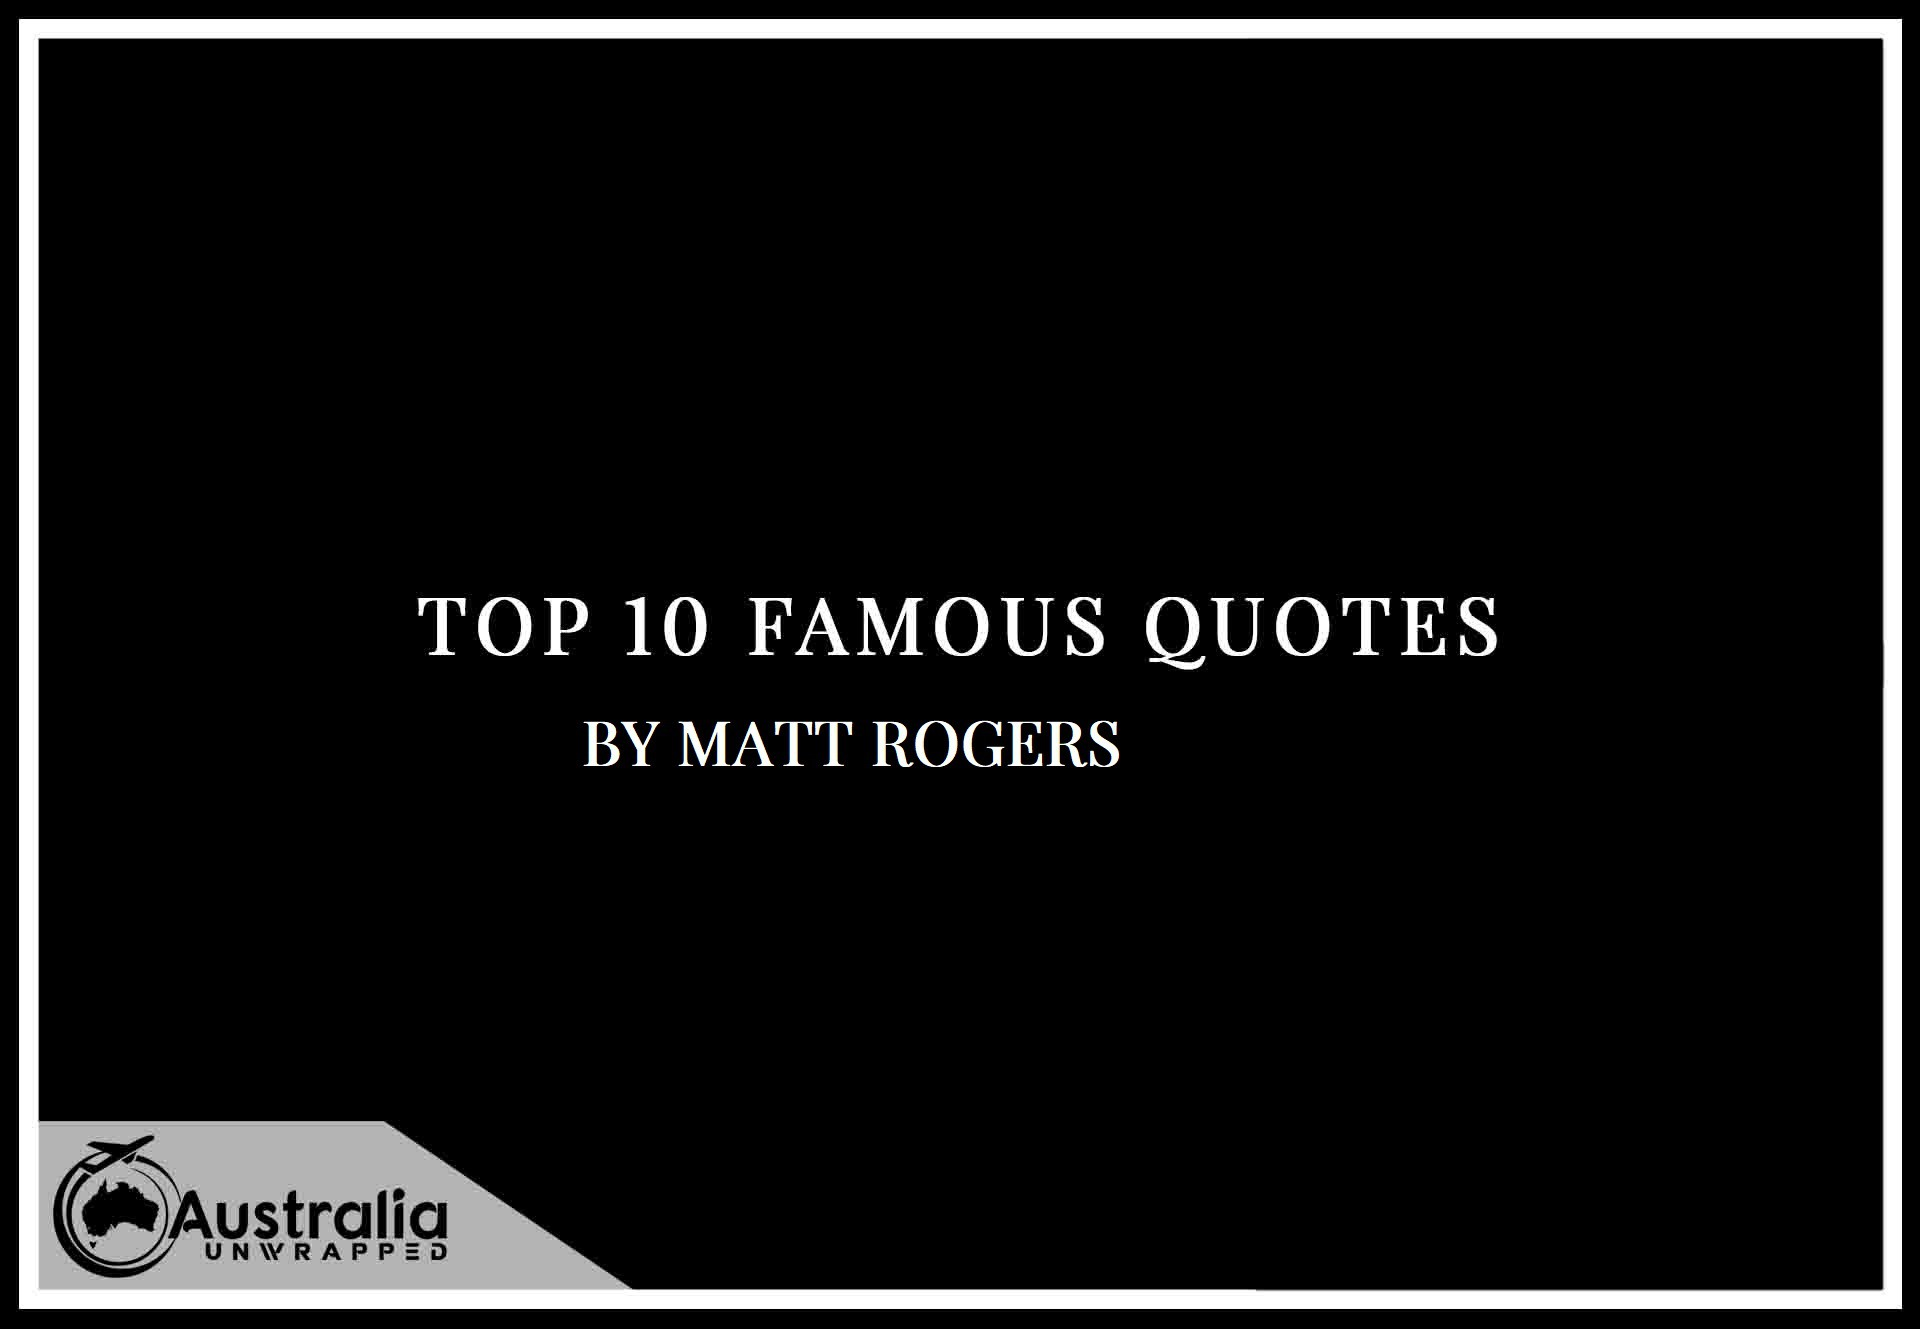 Top 10 Famous Quotes by Author Matt Rogers